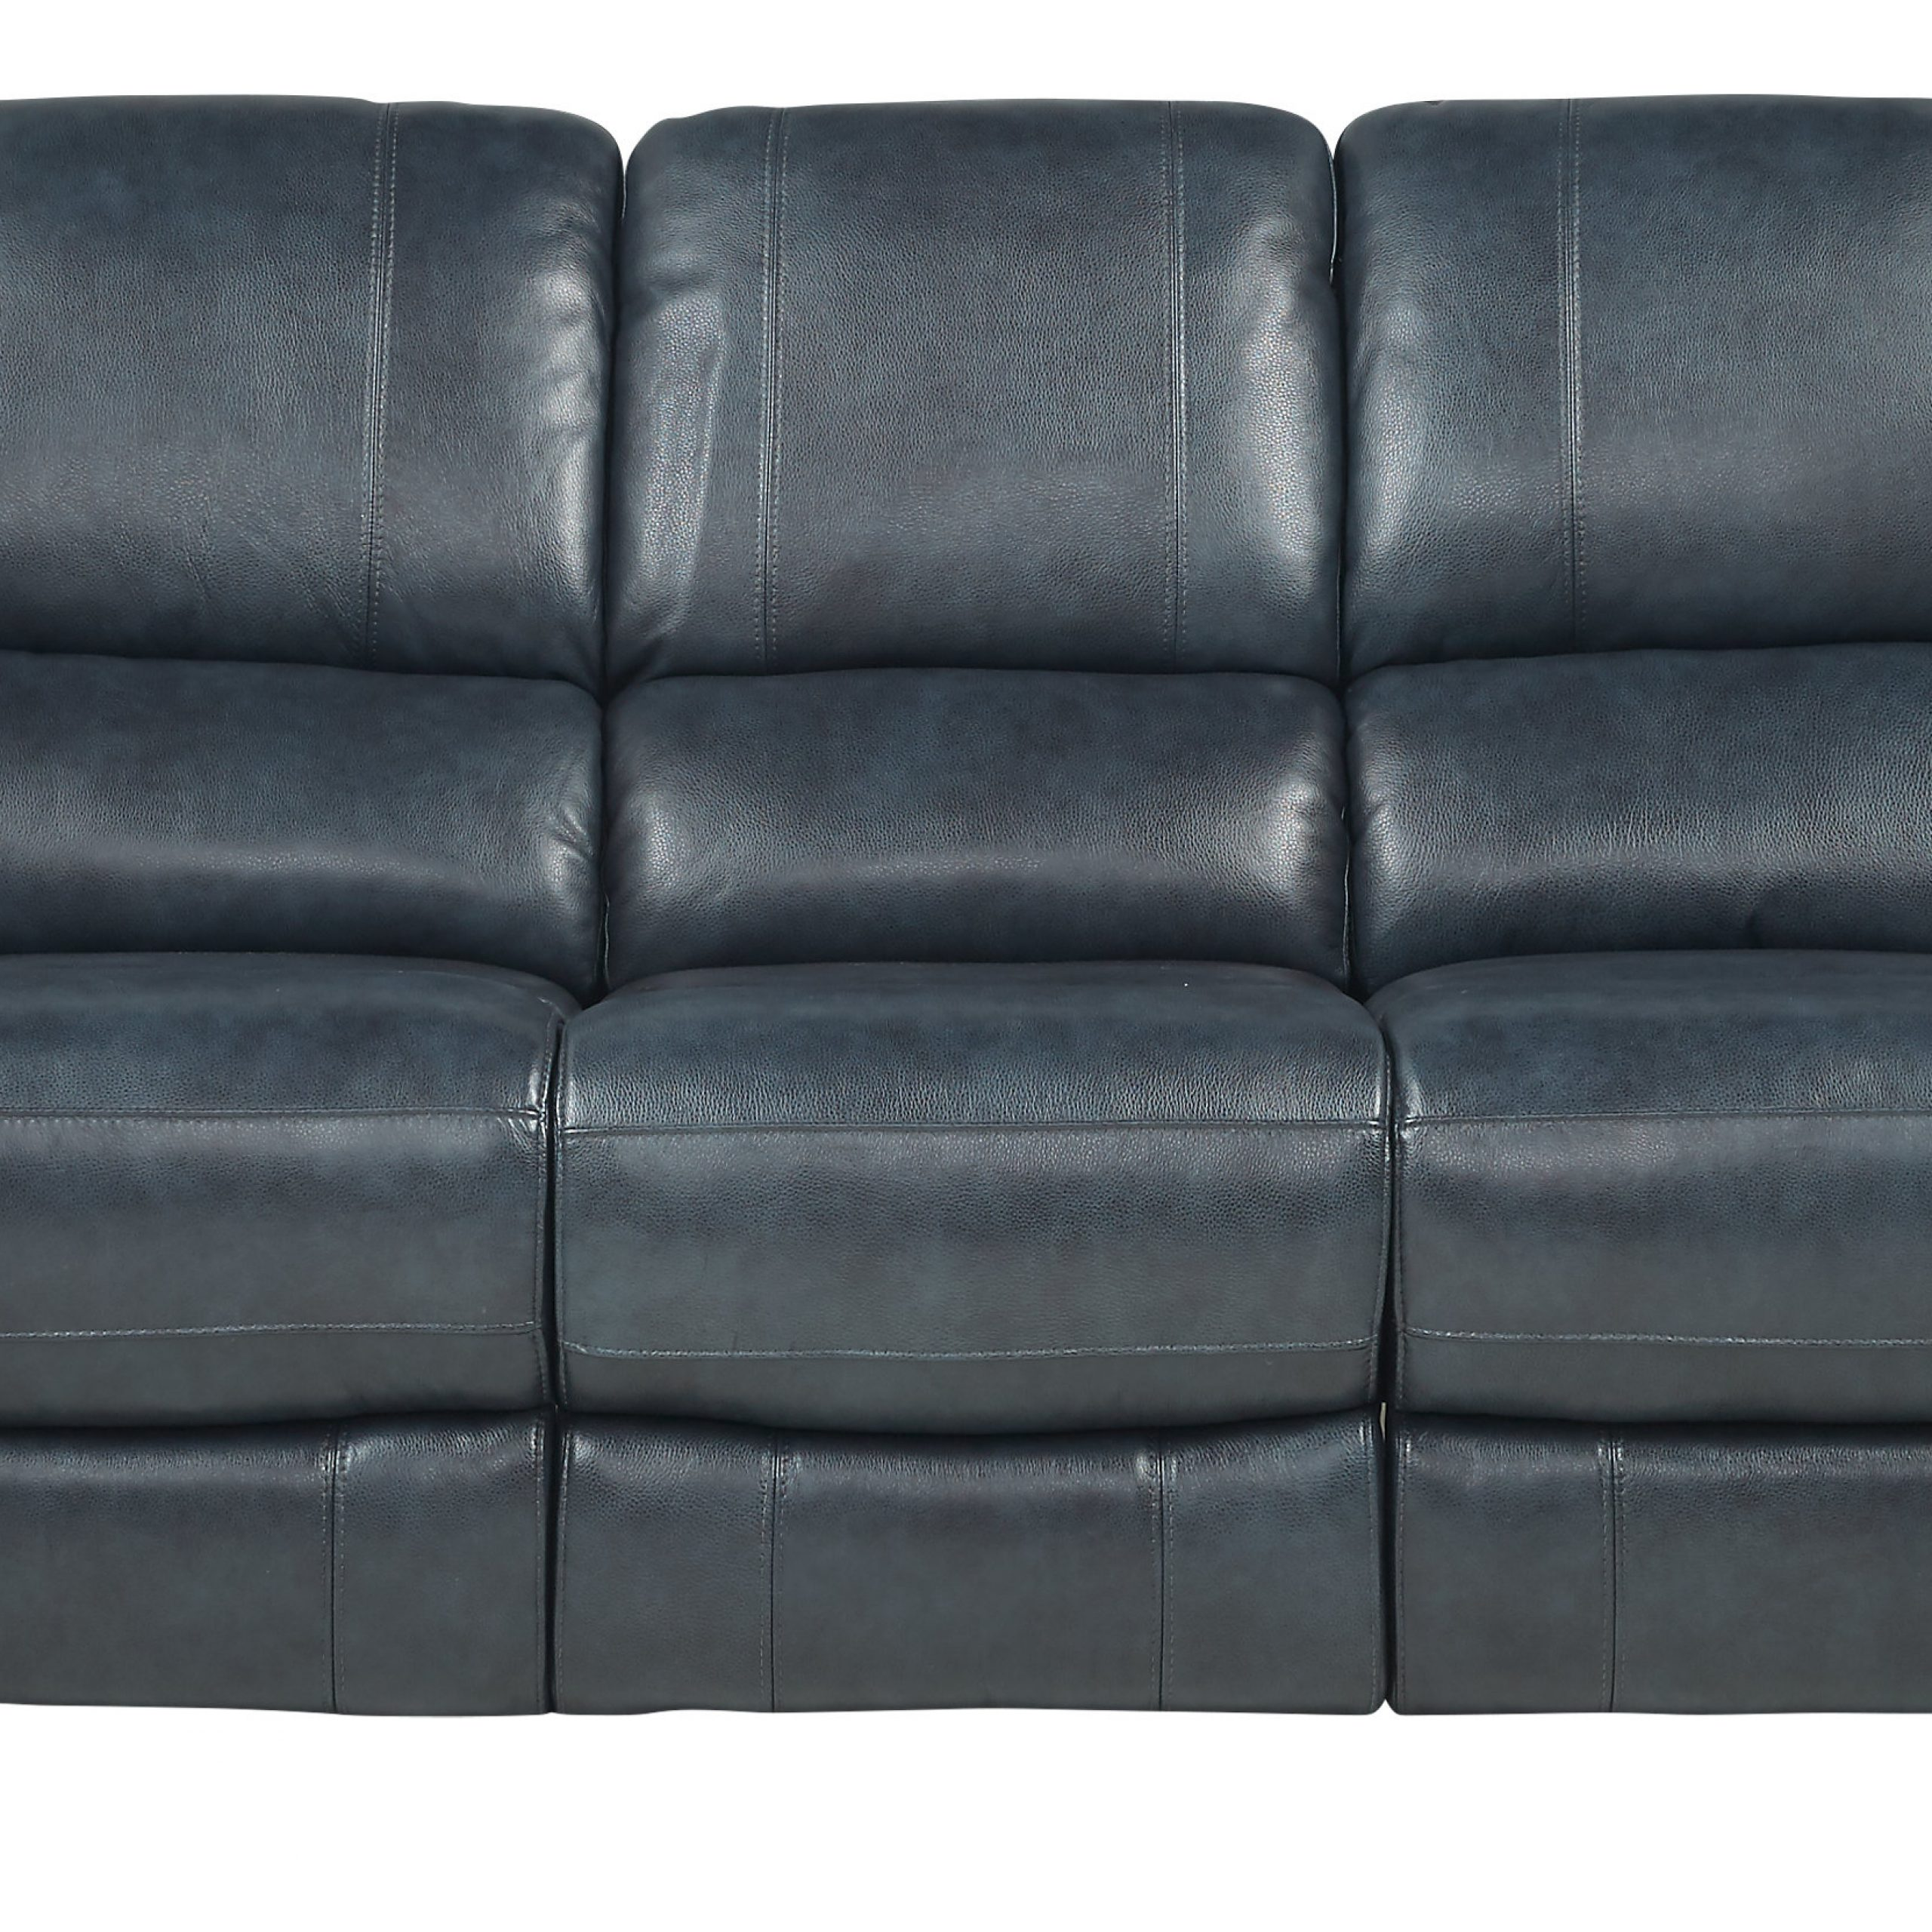 Power Reclining Sofas For Favorite Frederickburg Blue Leather Power Reclining Sofa – Traditional, (View 3 of 20)